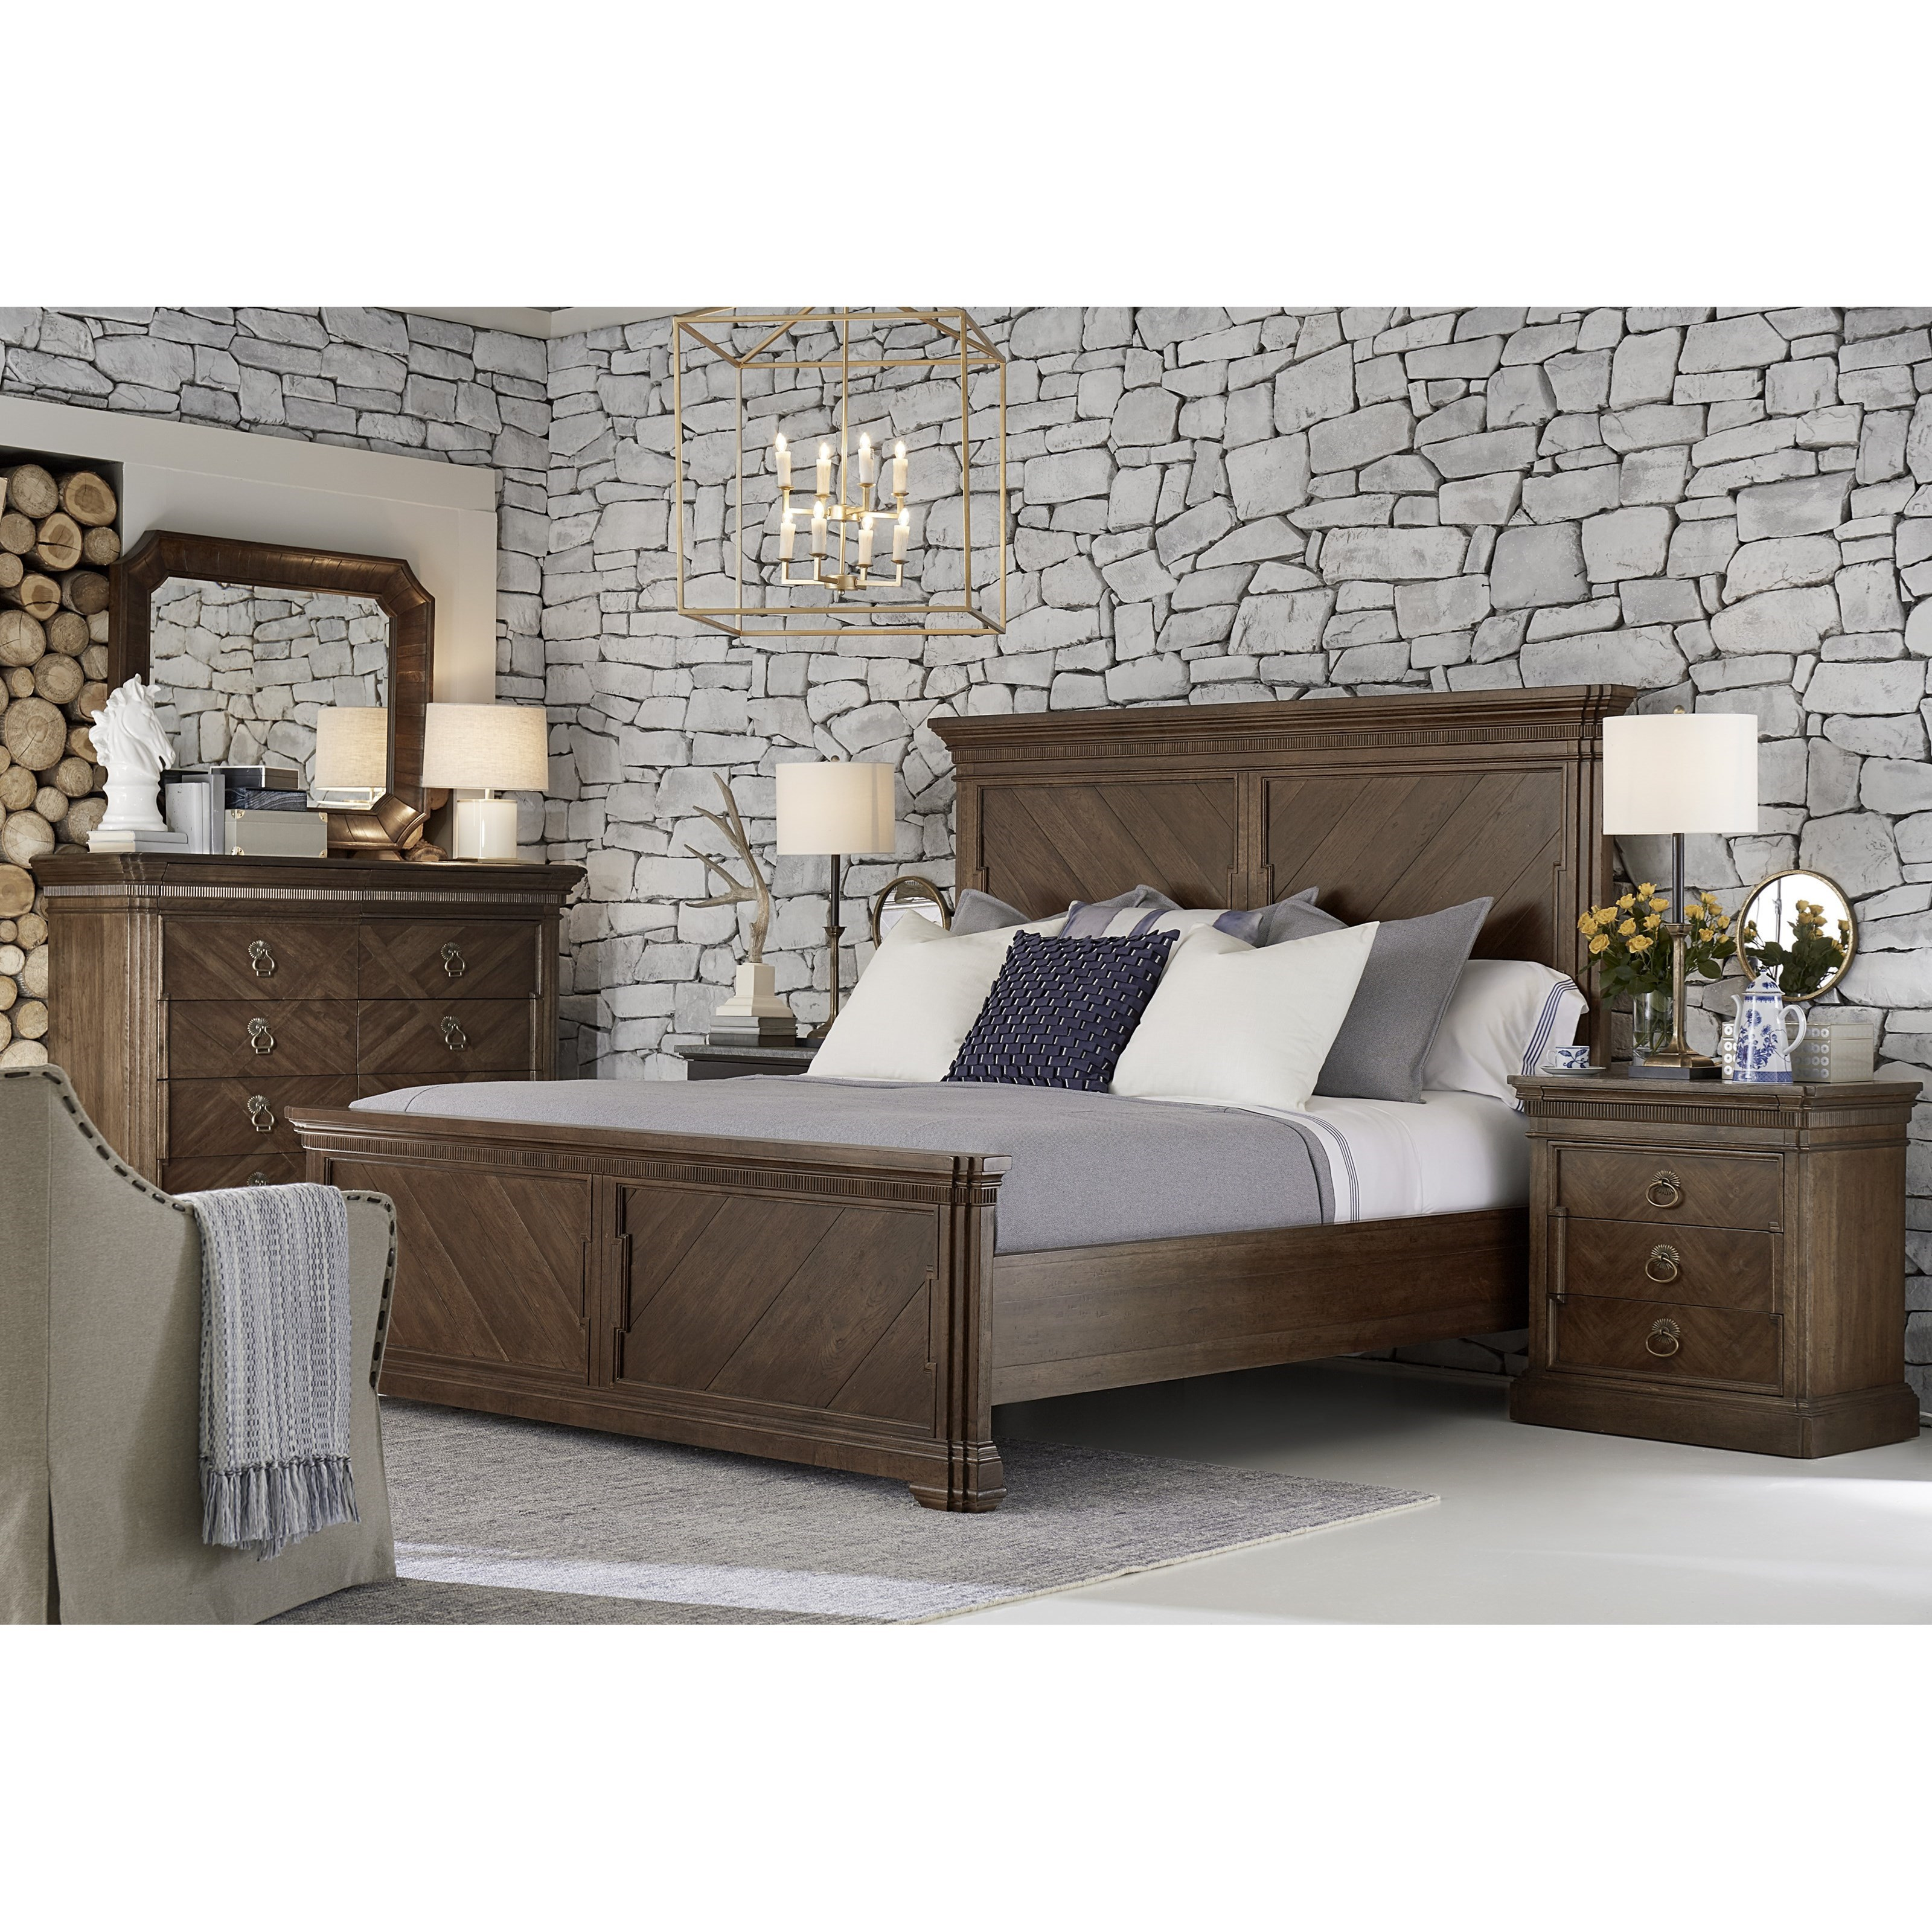 American Chapter California King Bedroom Group by A.R.T. Furniture Inc at Home Collections Furniture